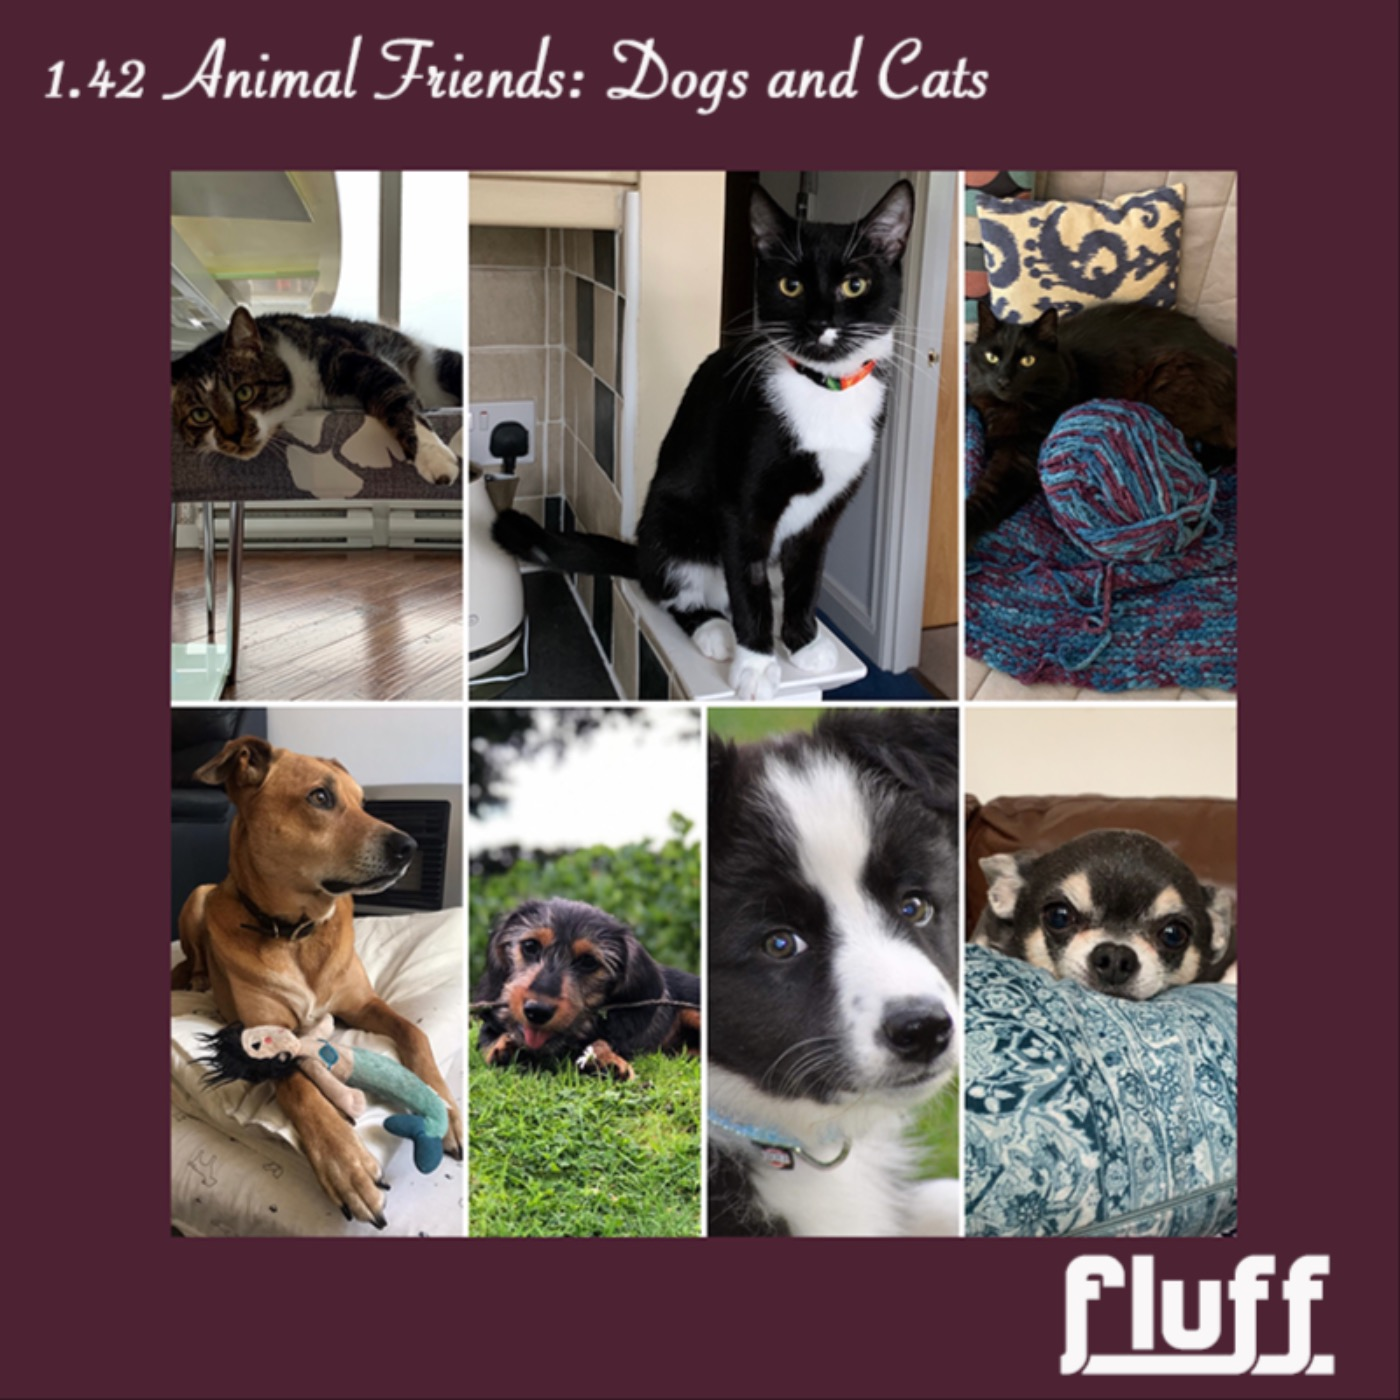 Animal Friends: Dogs and Cats